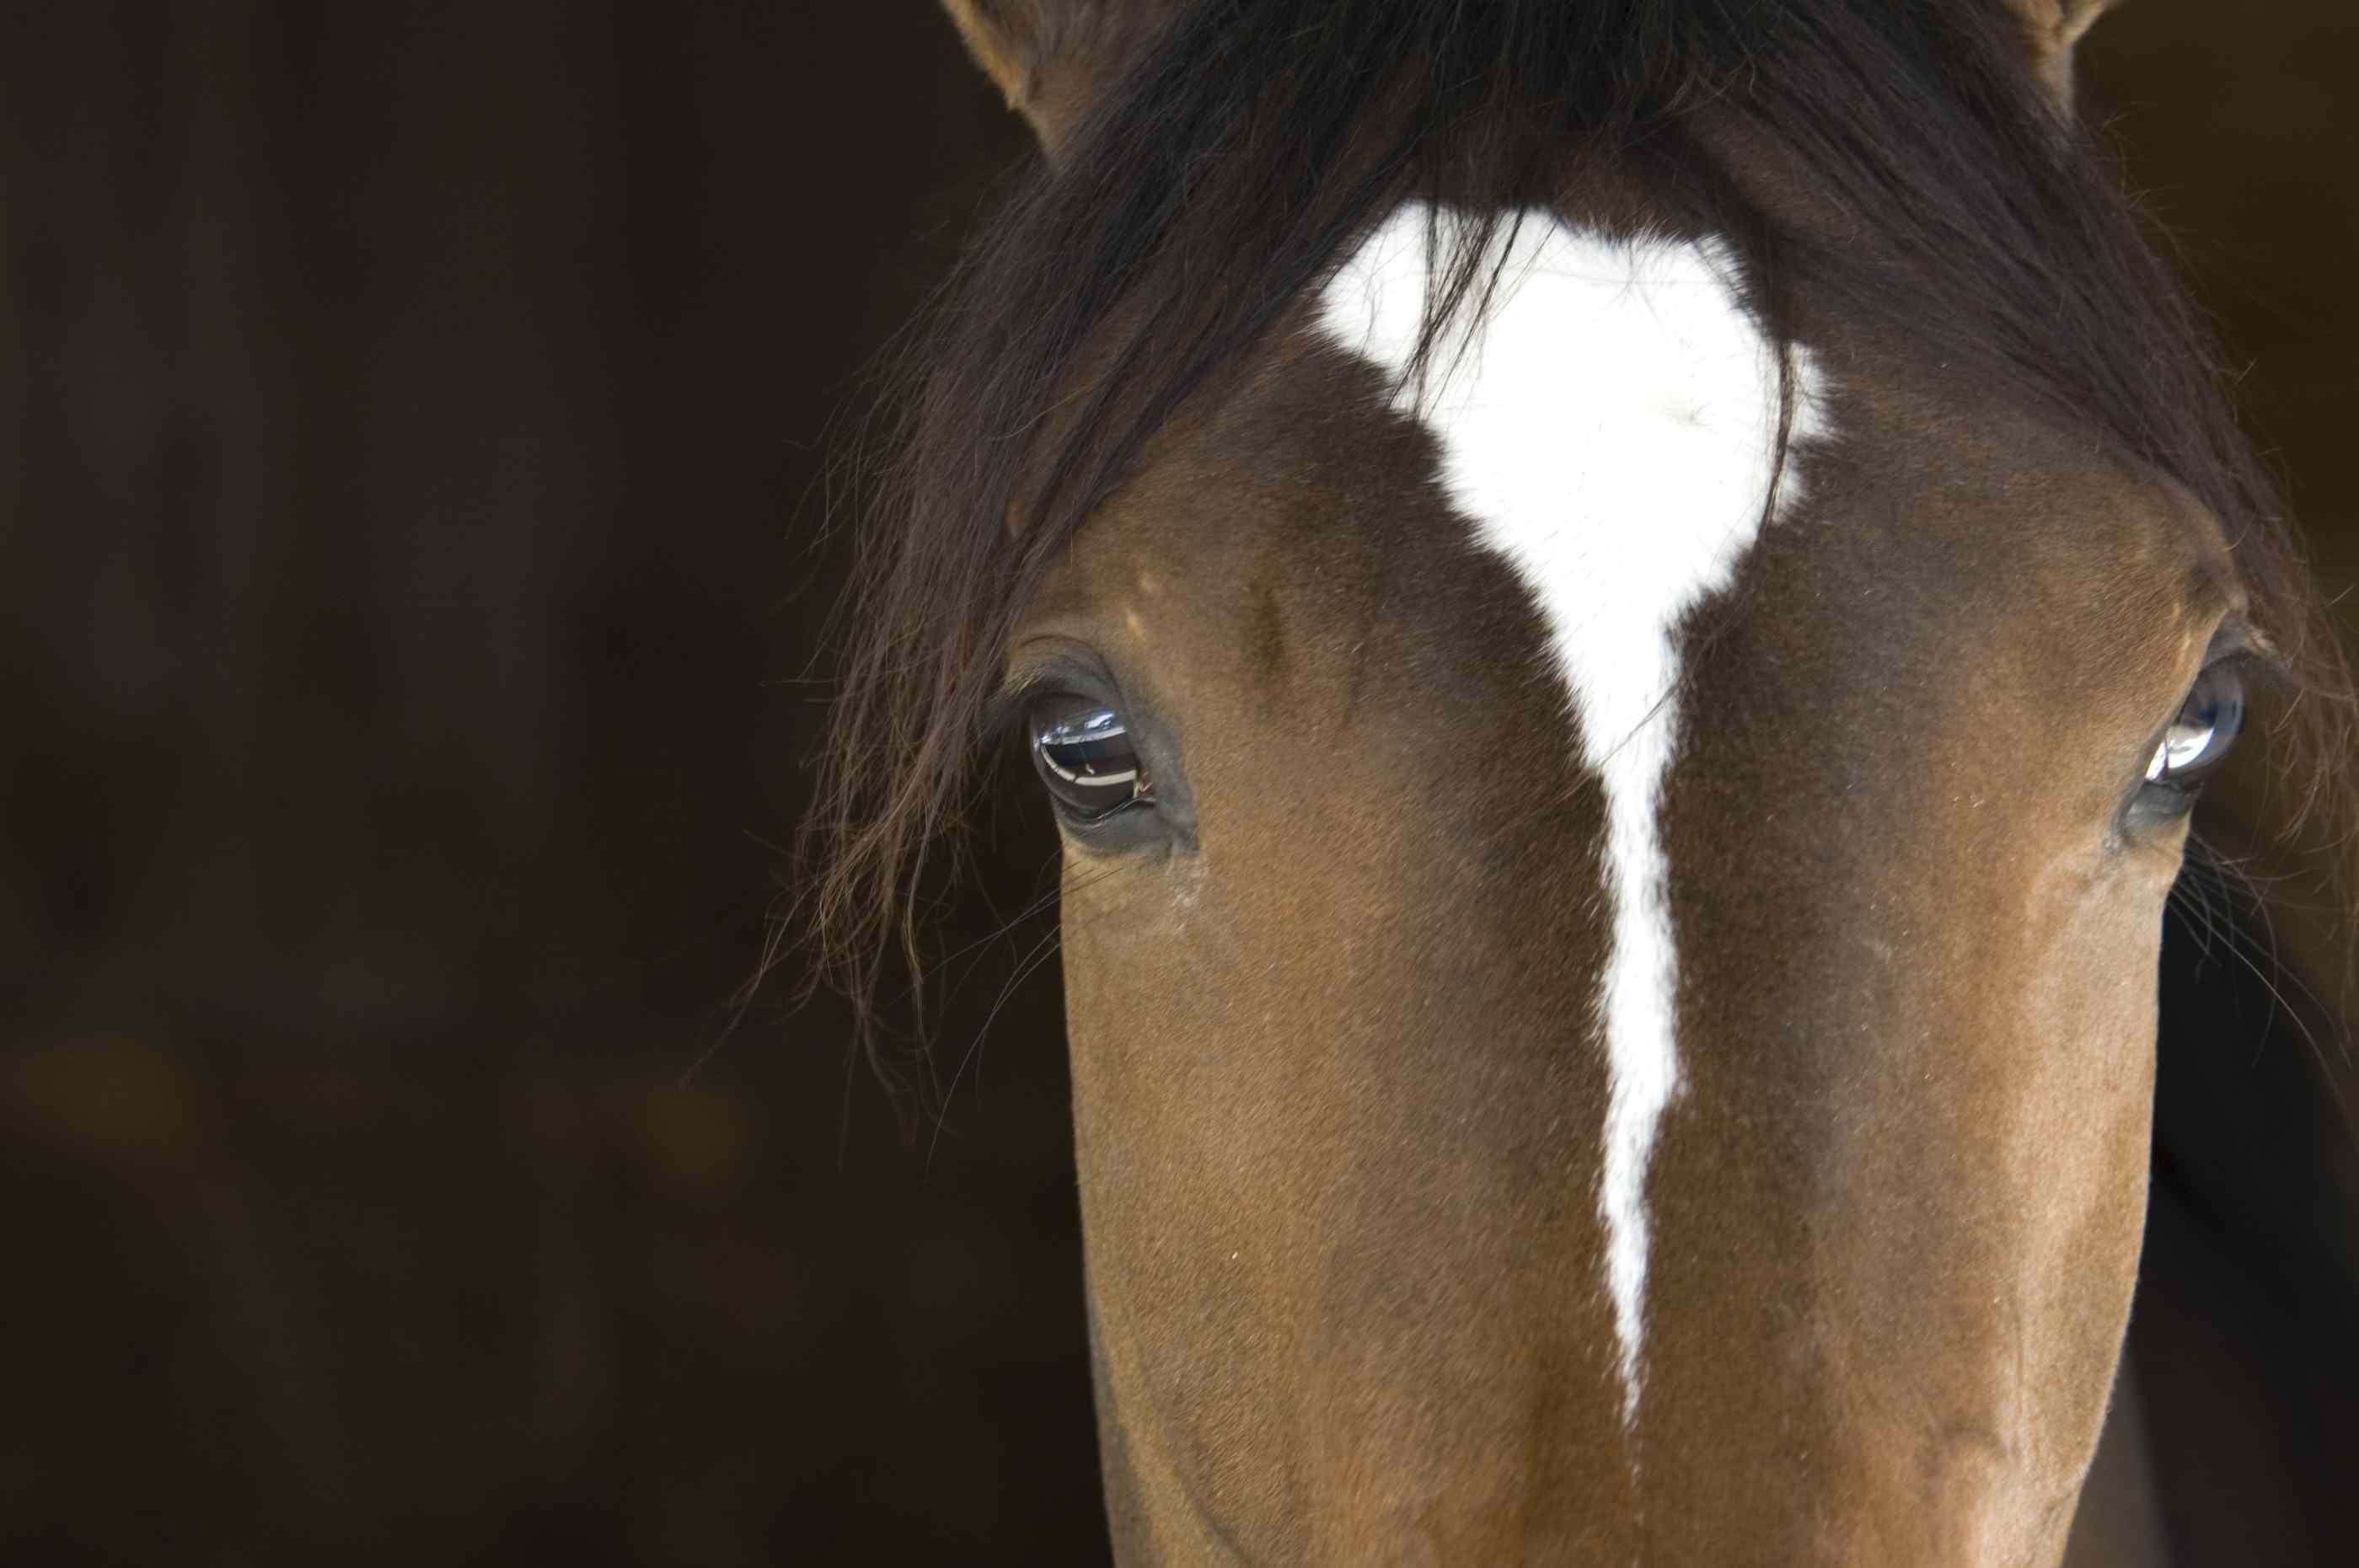 close up front view of horse face showing large eyes far apart on sides of head